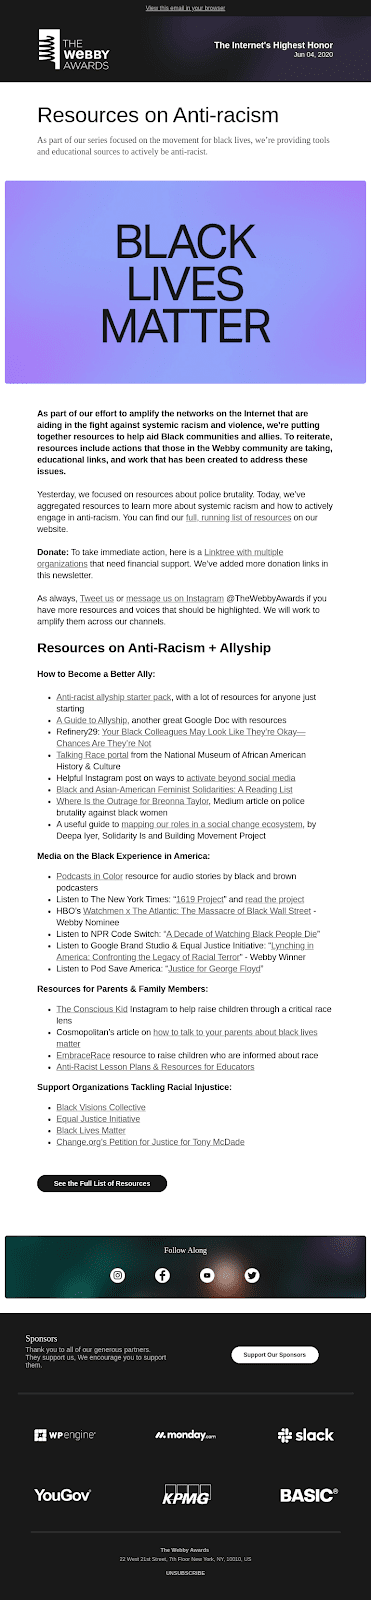 a-collection-of-anti-racism-resources-part-two-of-our-series